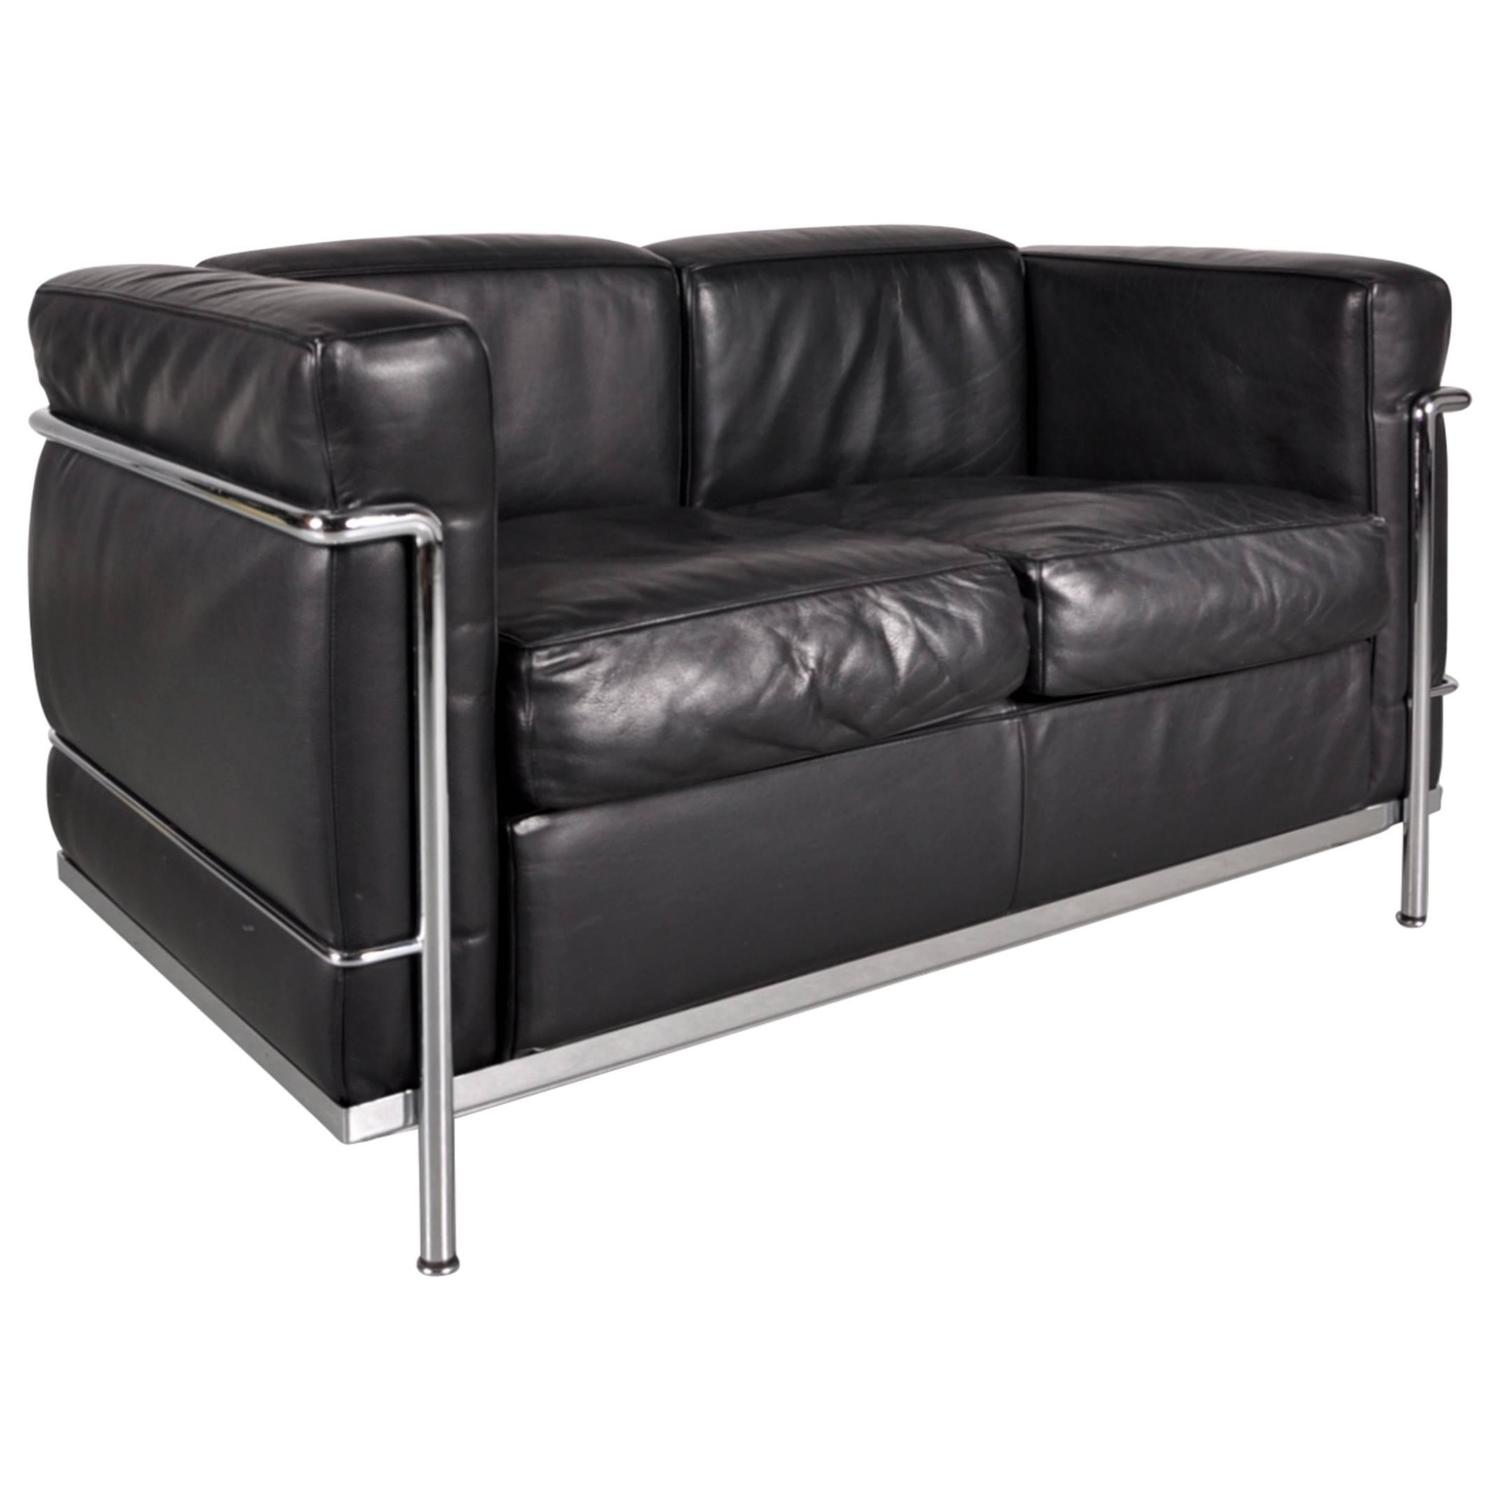 lc3 two seater sofa by le corbusier for cassina italy. Black Bedroom Furniture Sets. Home Design Ideas